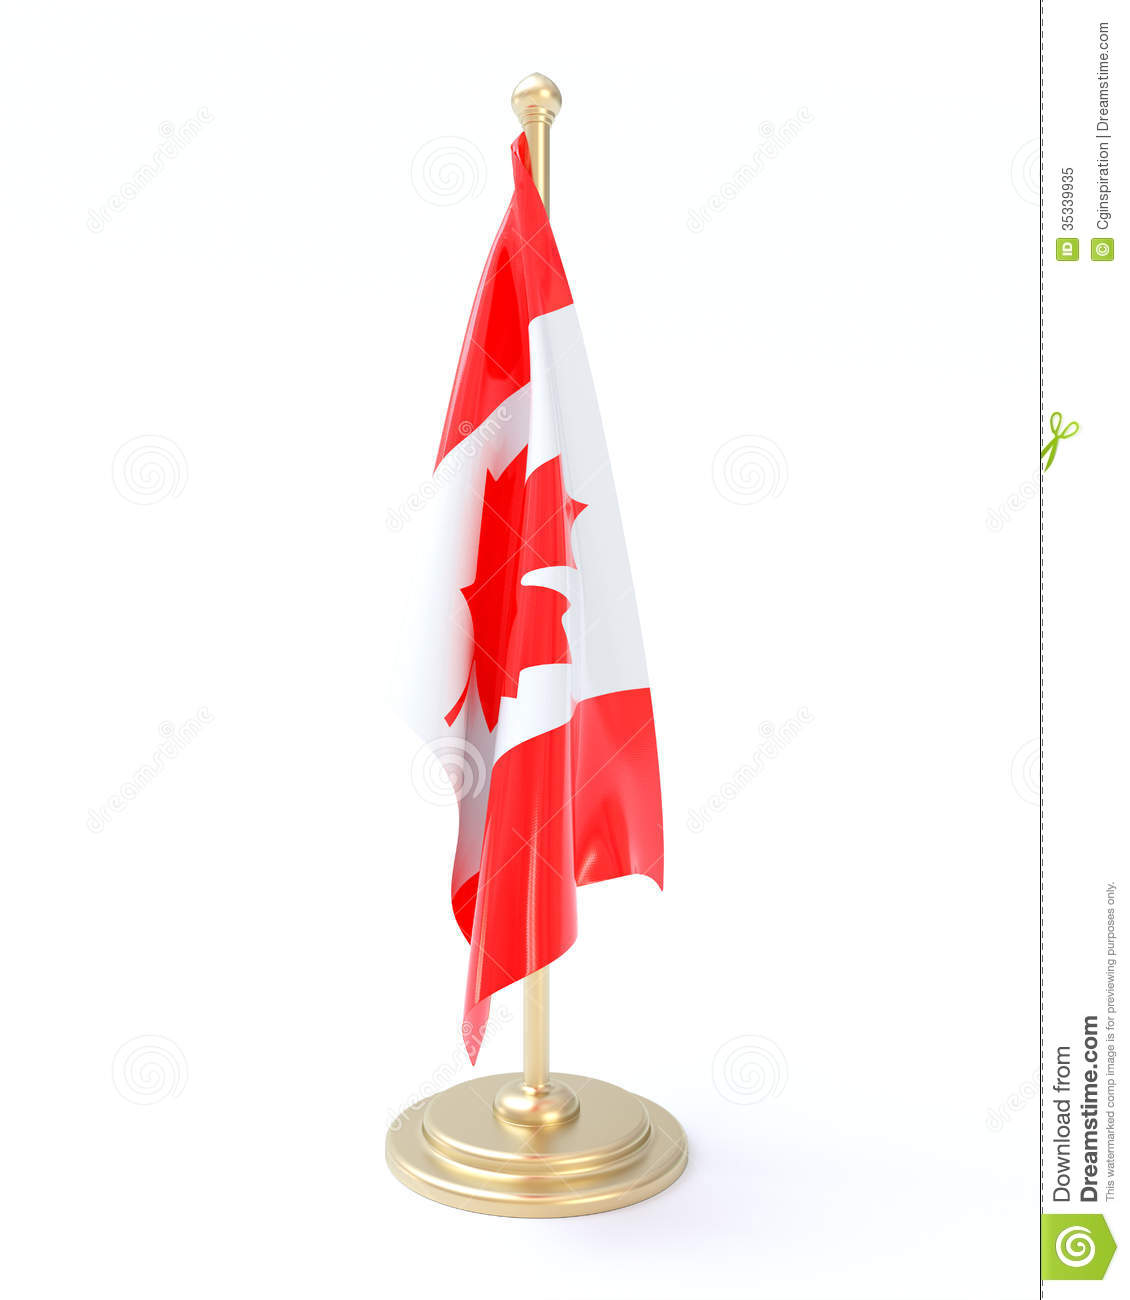 Canadian Flag Royalty Free Stock Photo - Image: 35339935